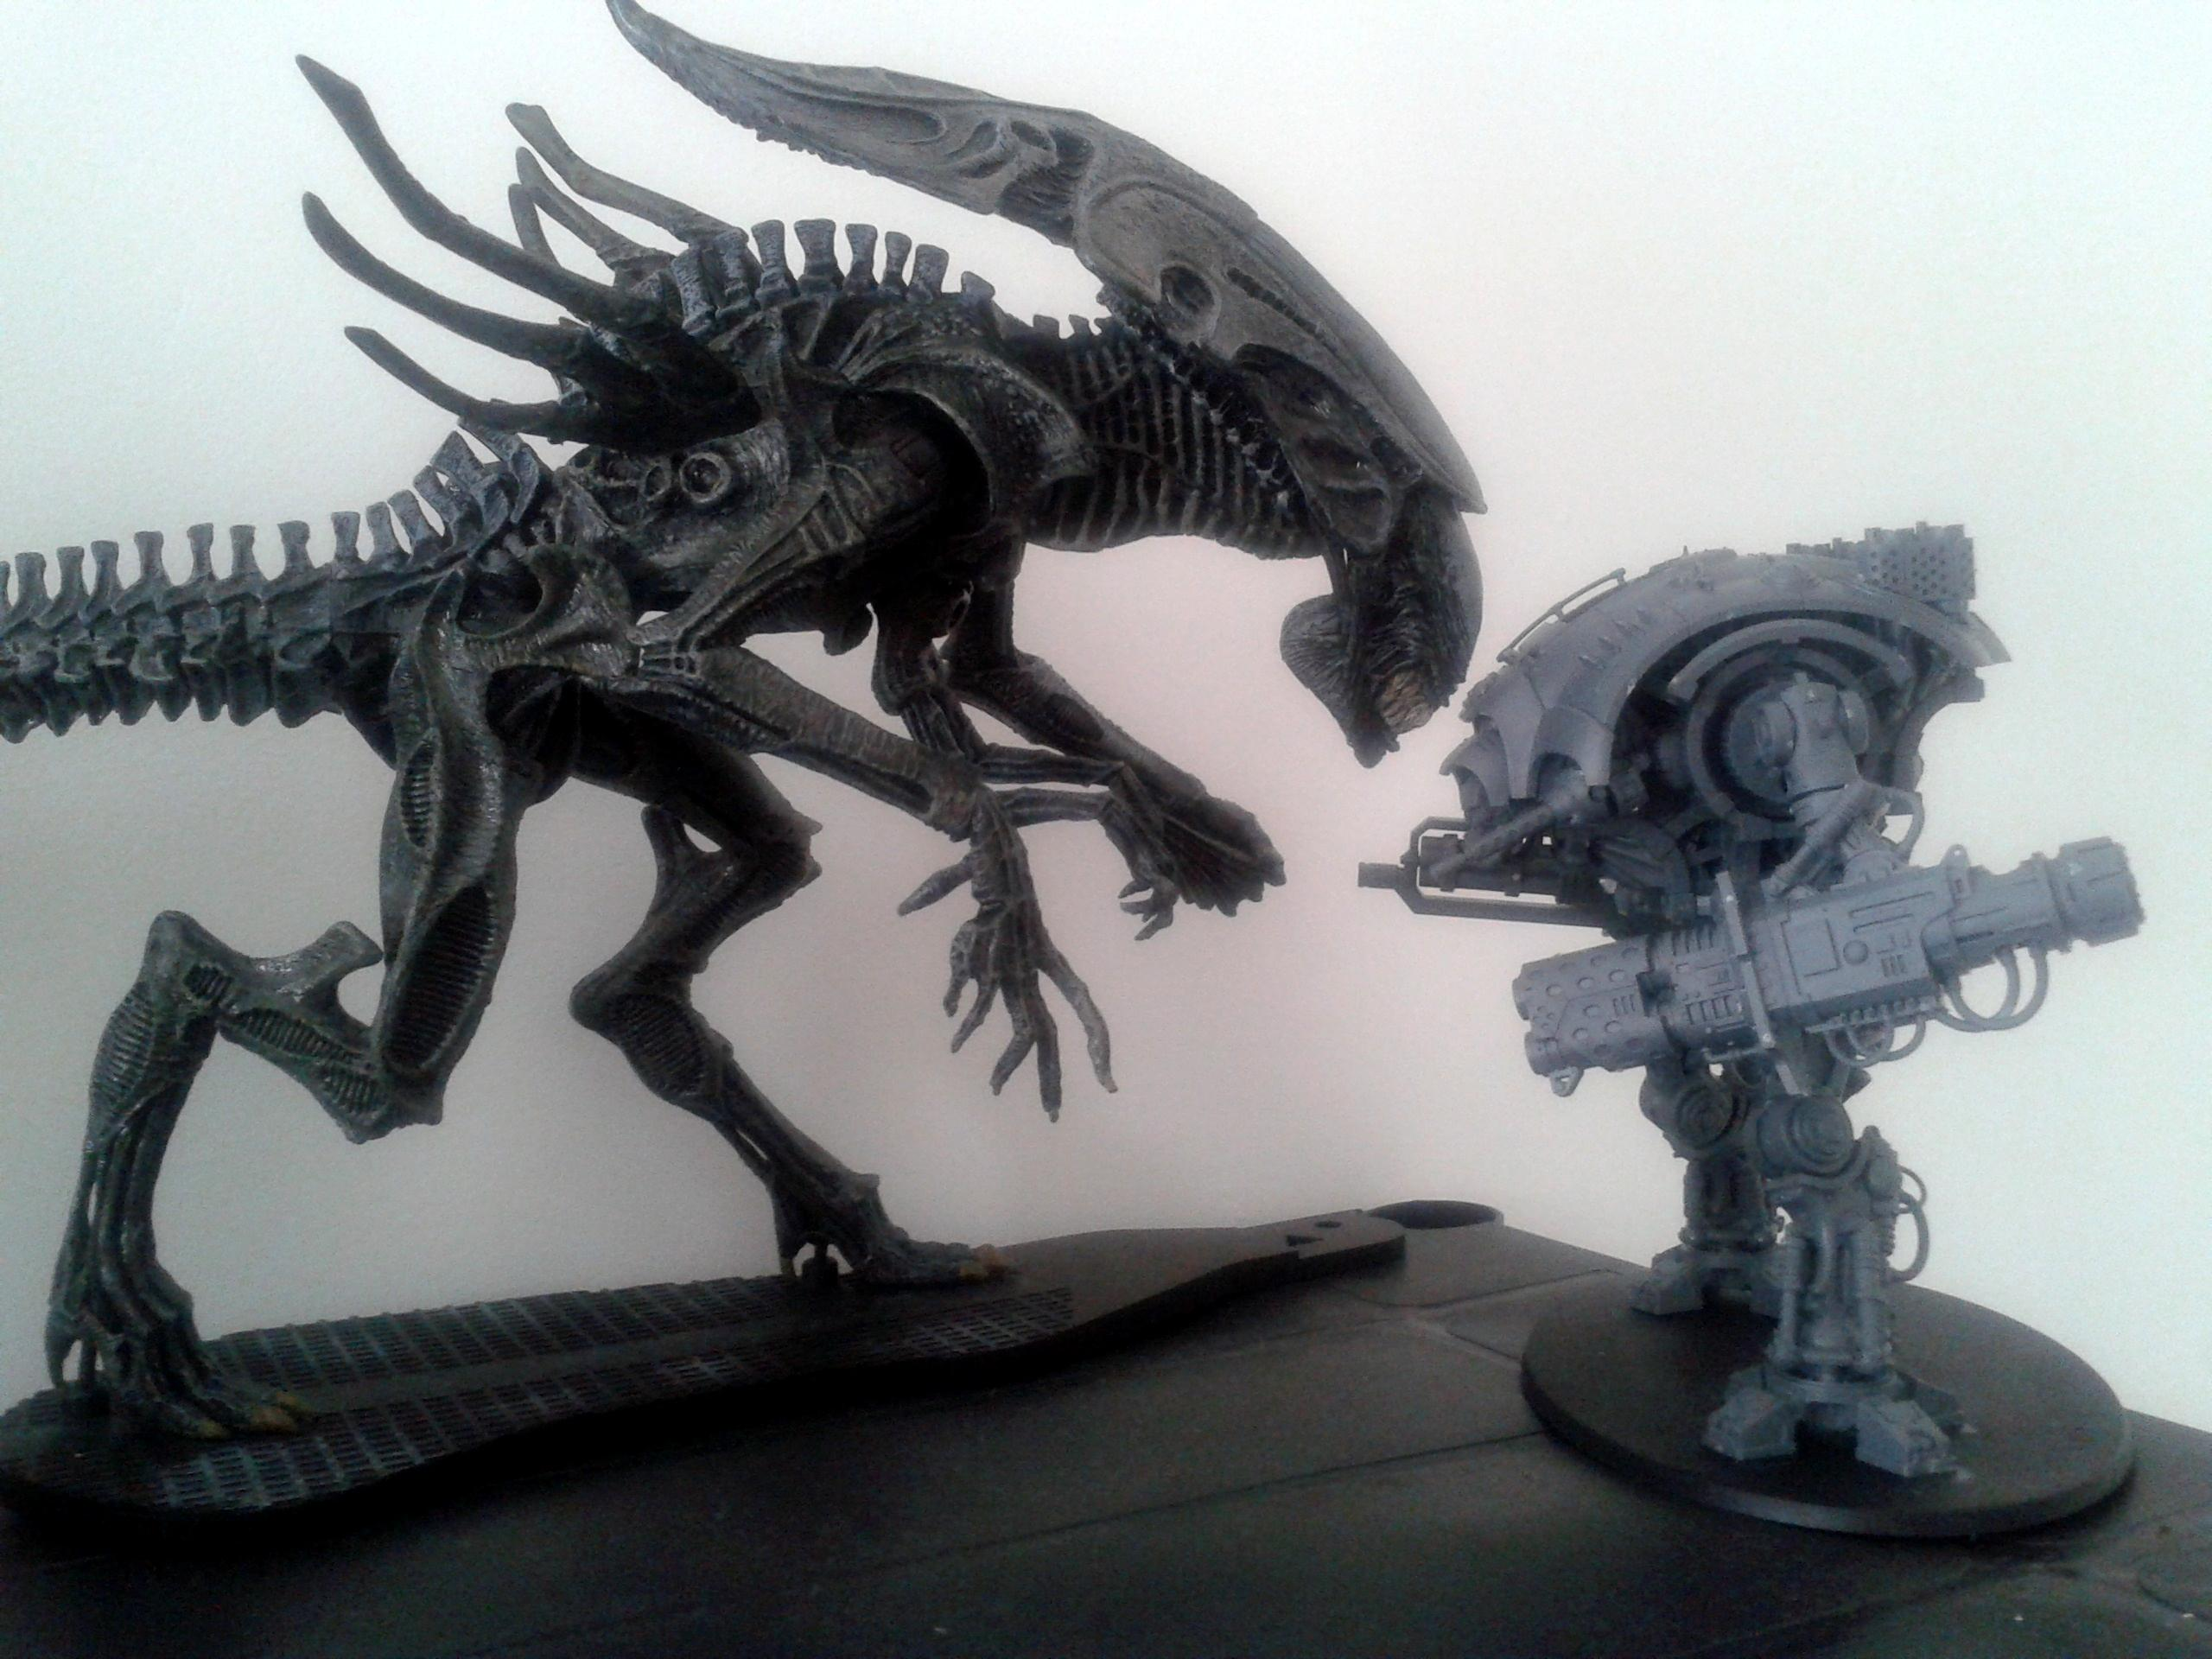 Alien Queen, Bio-titan, Comparison, Imperial Knight, Mcfarlane, Scale, Size, Tyranids